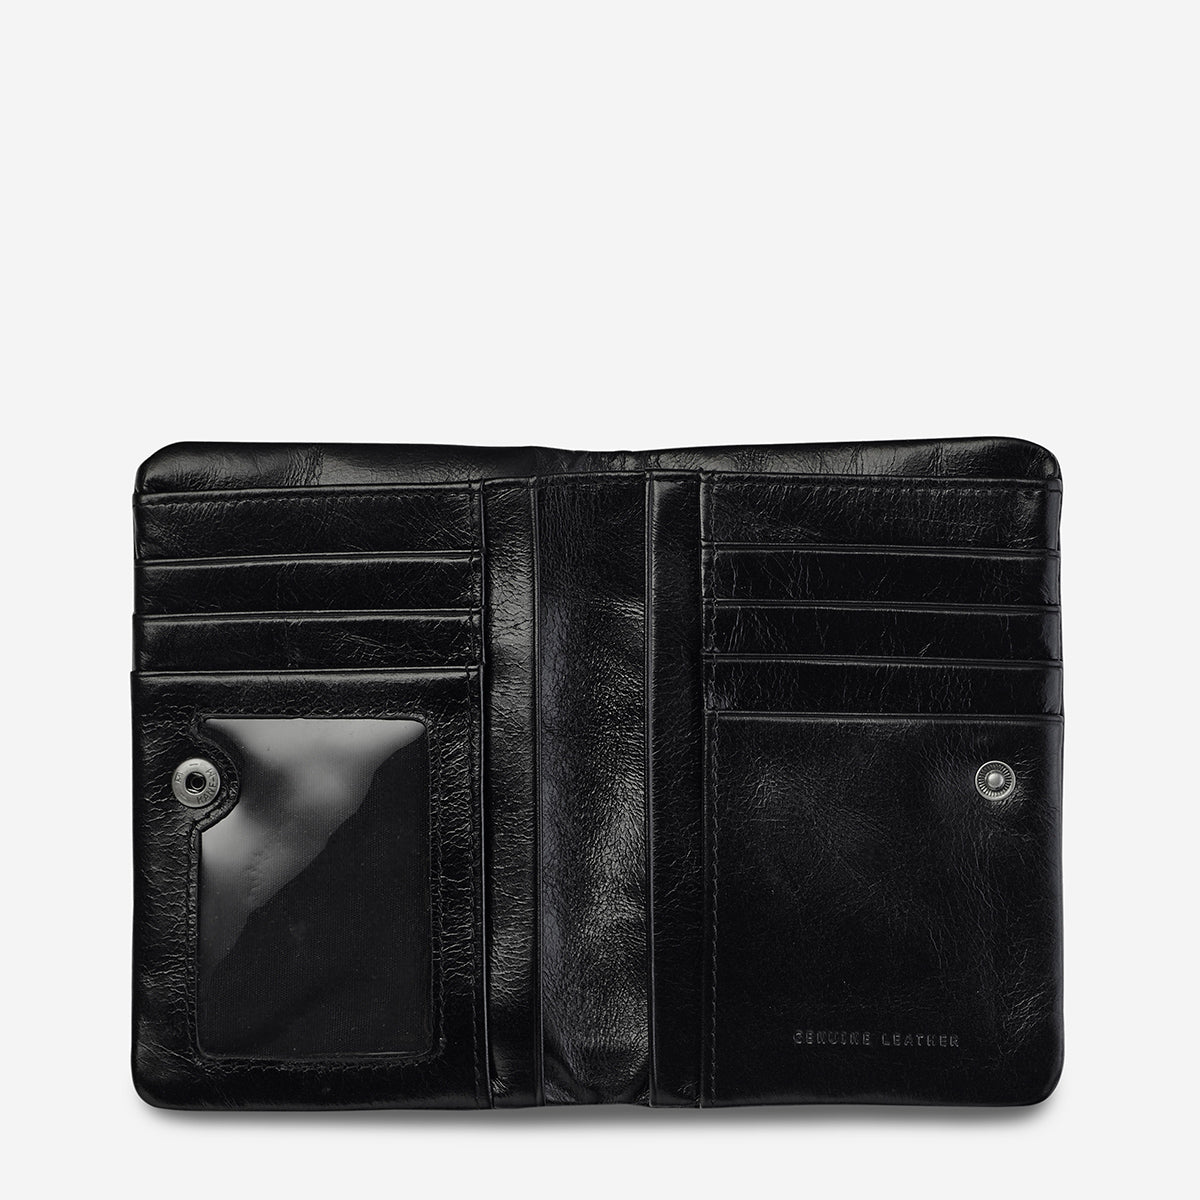 Status Anxiety Is Now Better Women's Compact Leather Wallet - Black